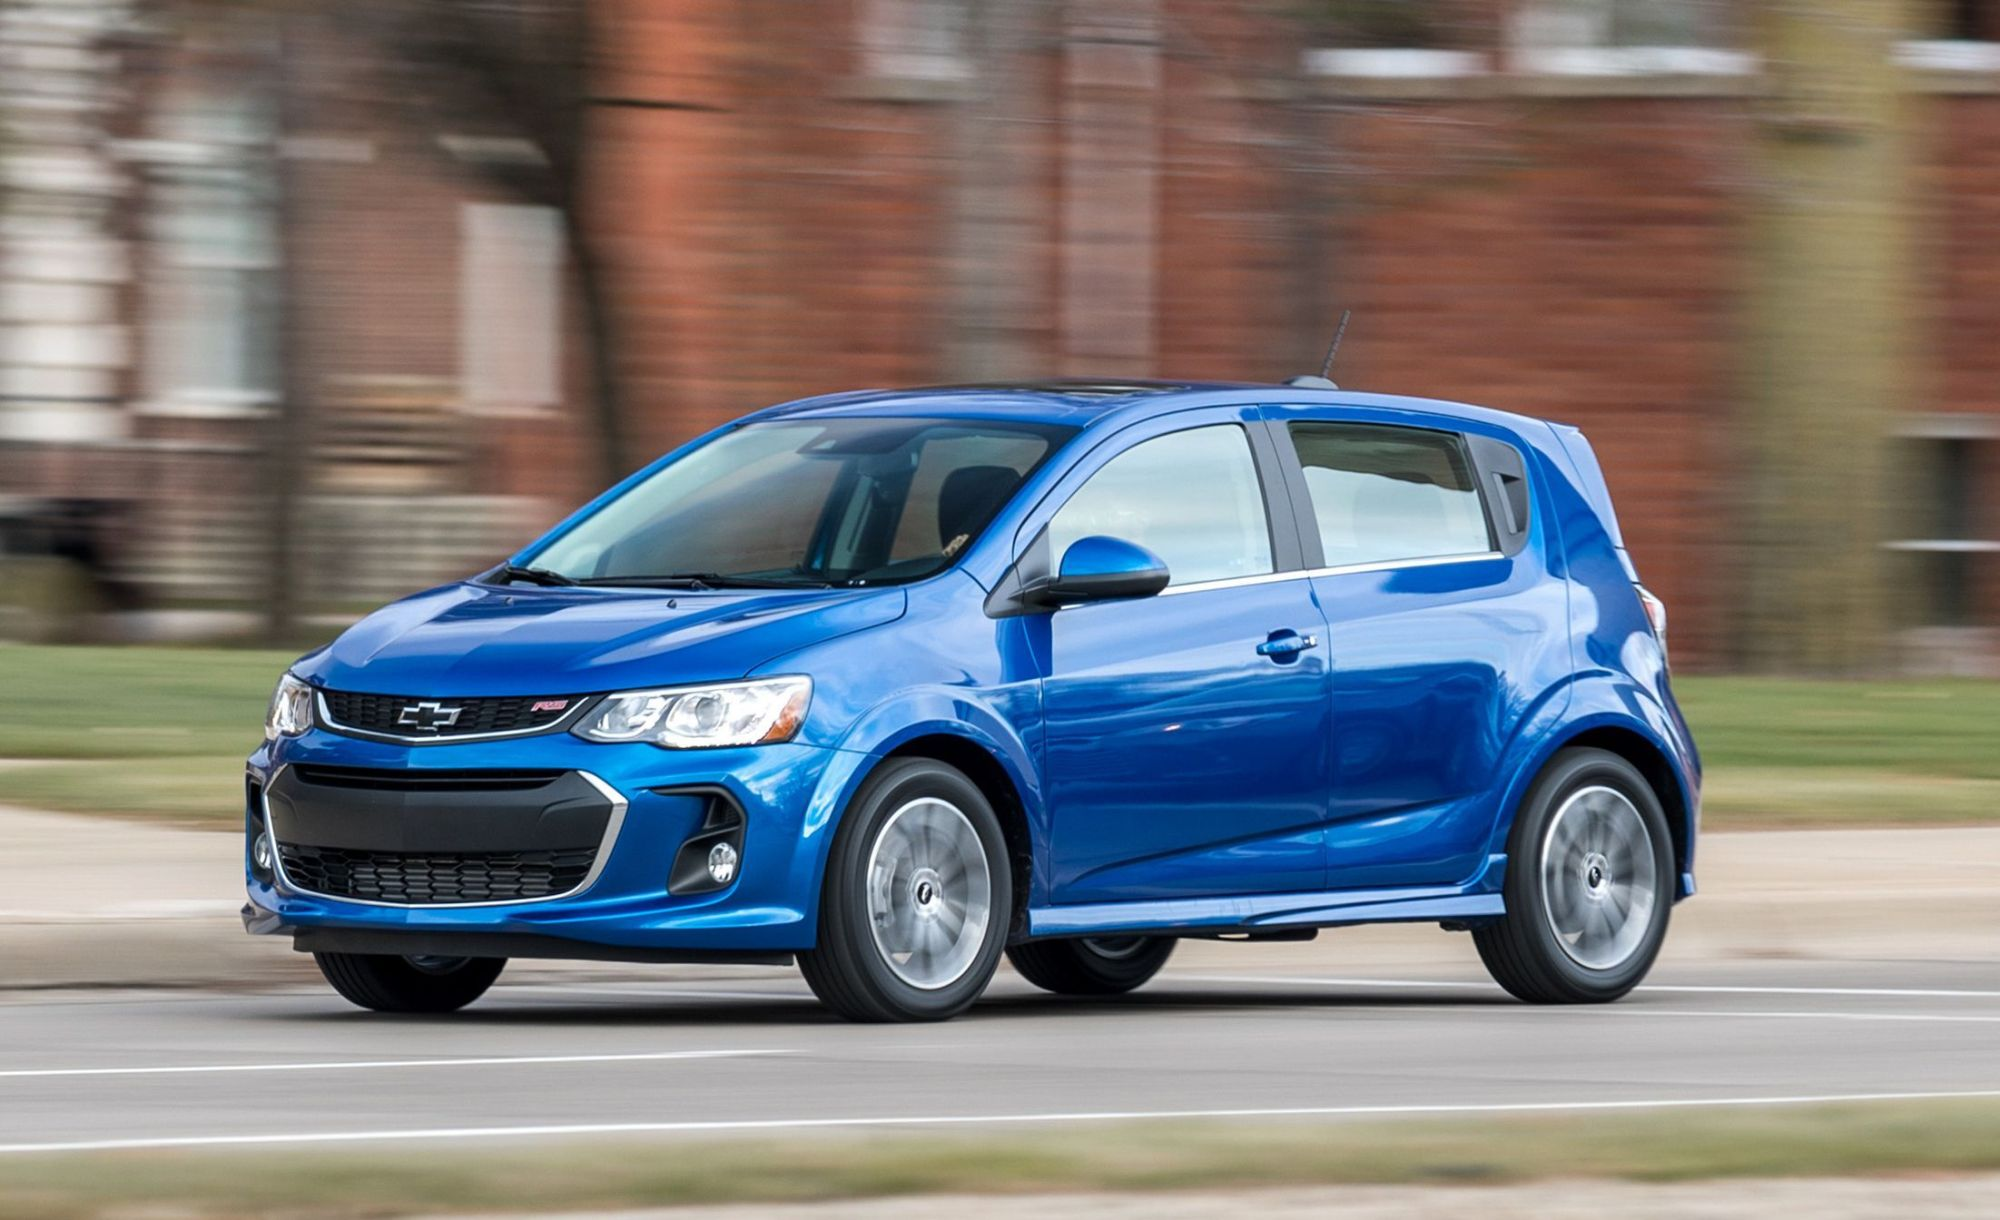 hight resolution of 2019 chevrolet sonic lt rs hatchback 101 1547157850 jpg